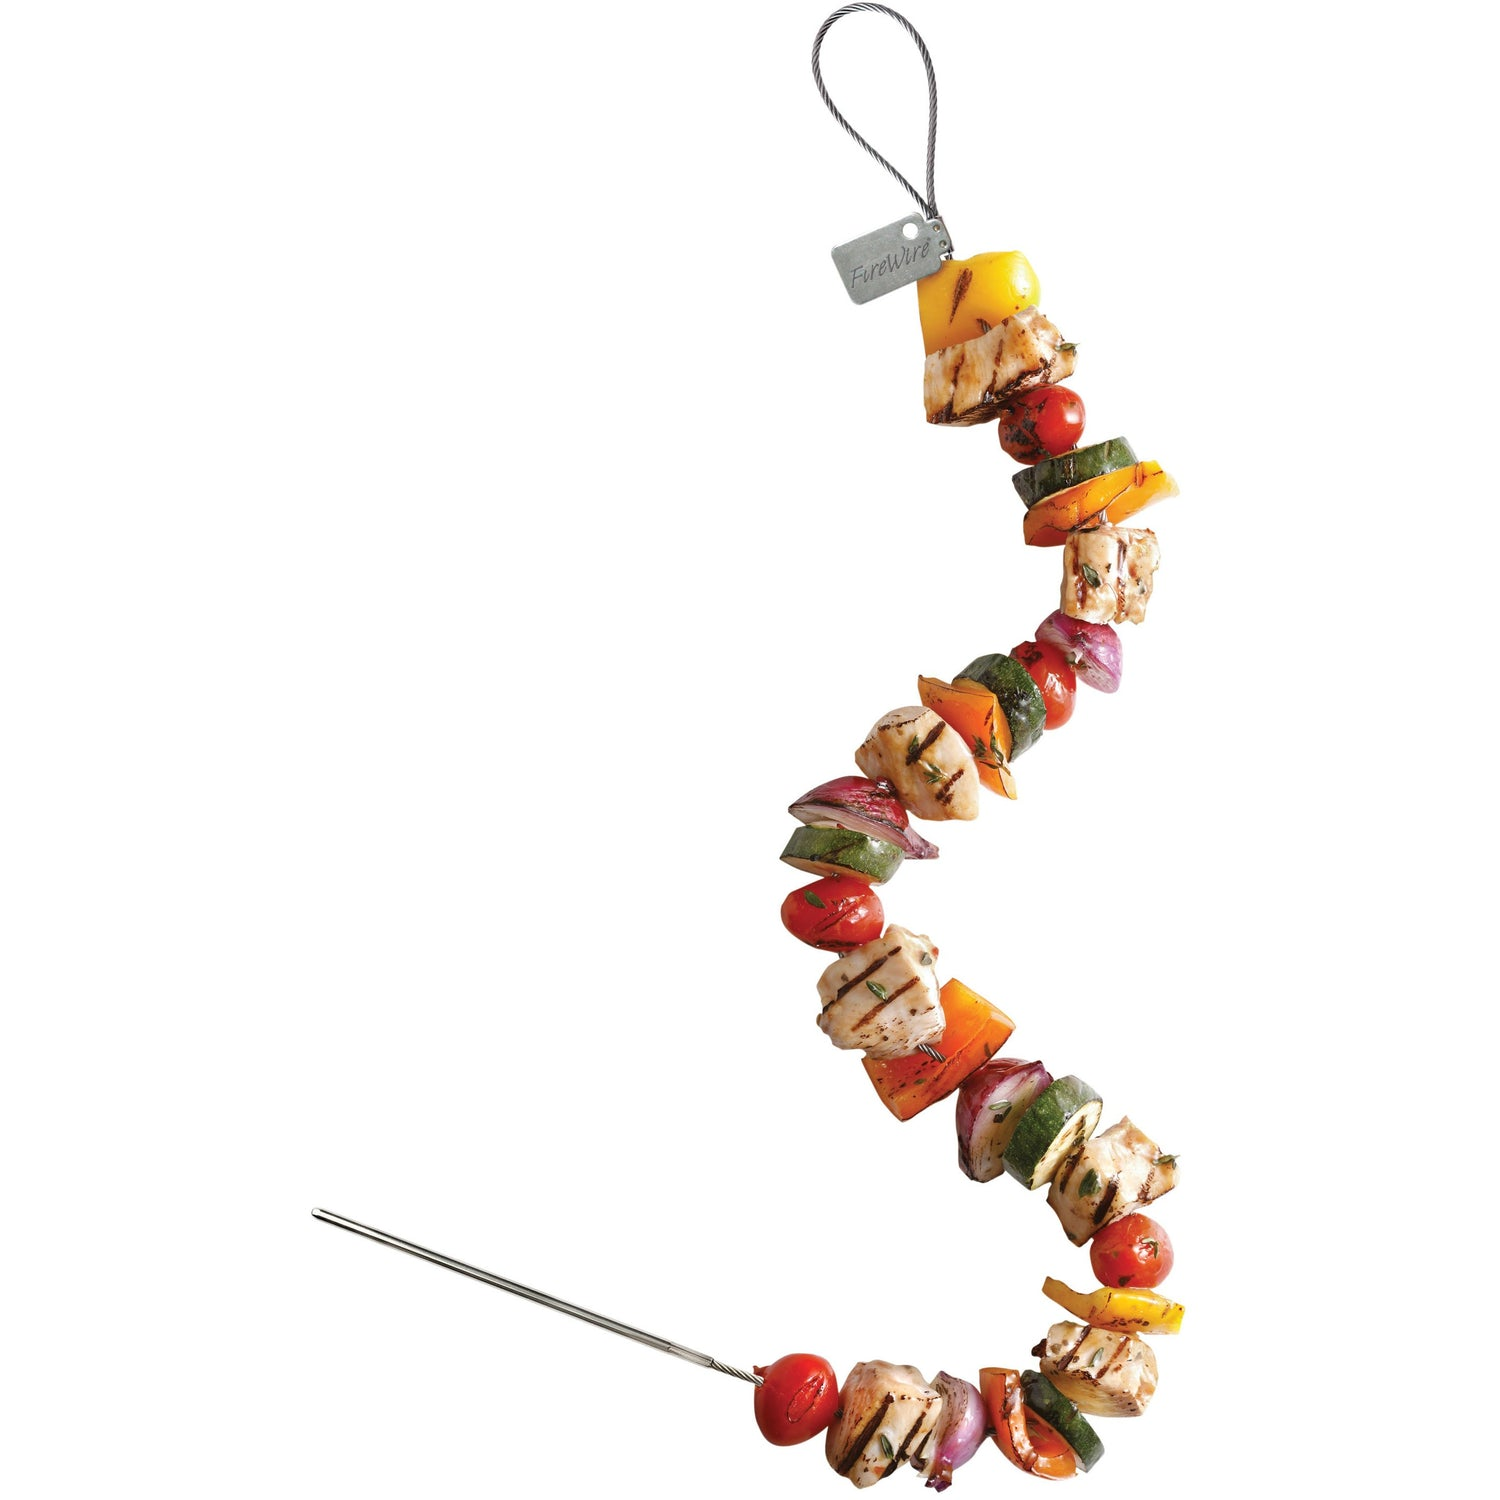 Big Green Egg Firewire Flexible Skewers